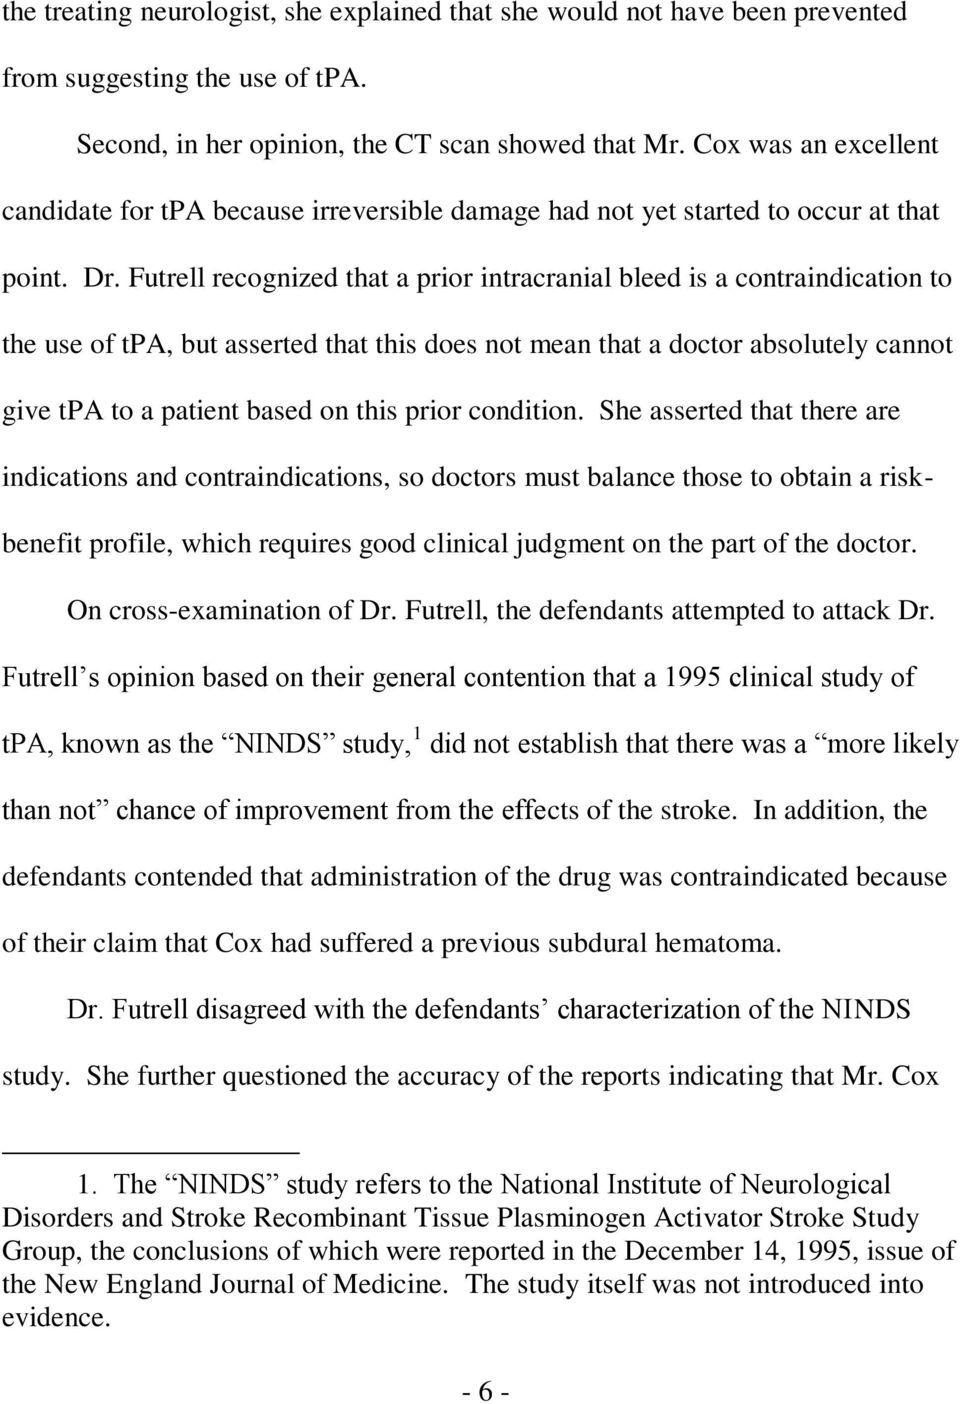 Futrell recognized that a prior intracranial bleed is a contraindication to the use of tpa, but asserted that this does not mean that a doctor absolutely cannot give tpa to a patient based on this